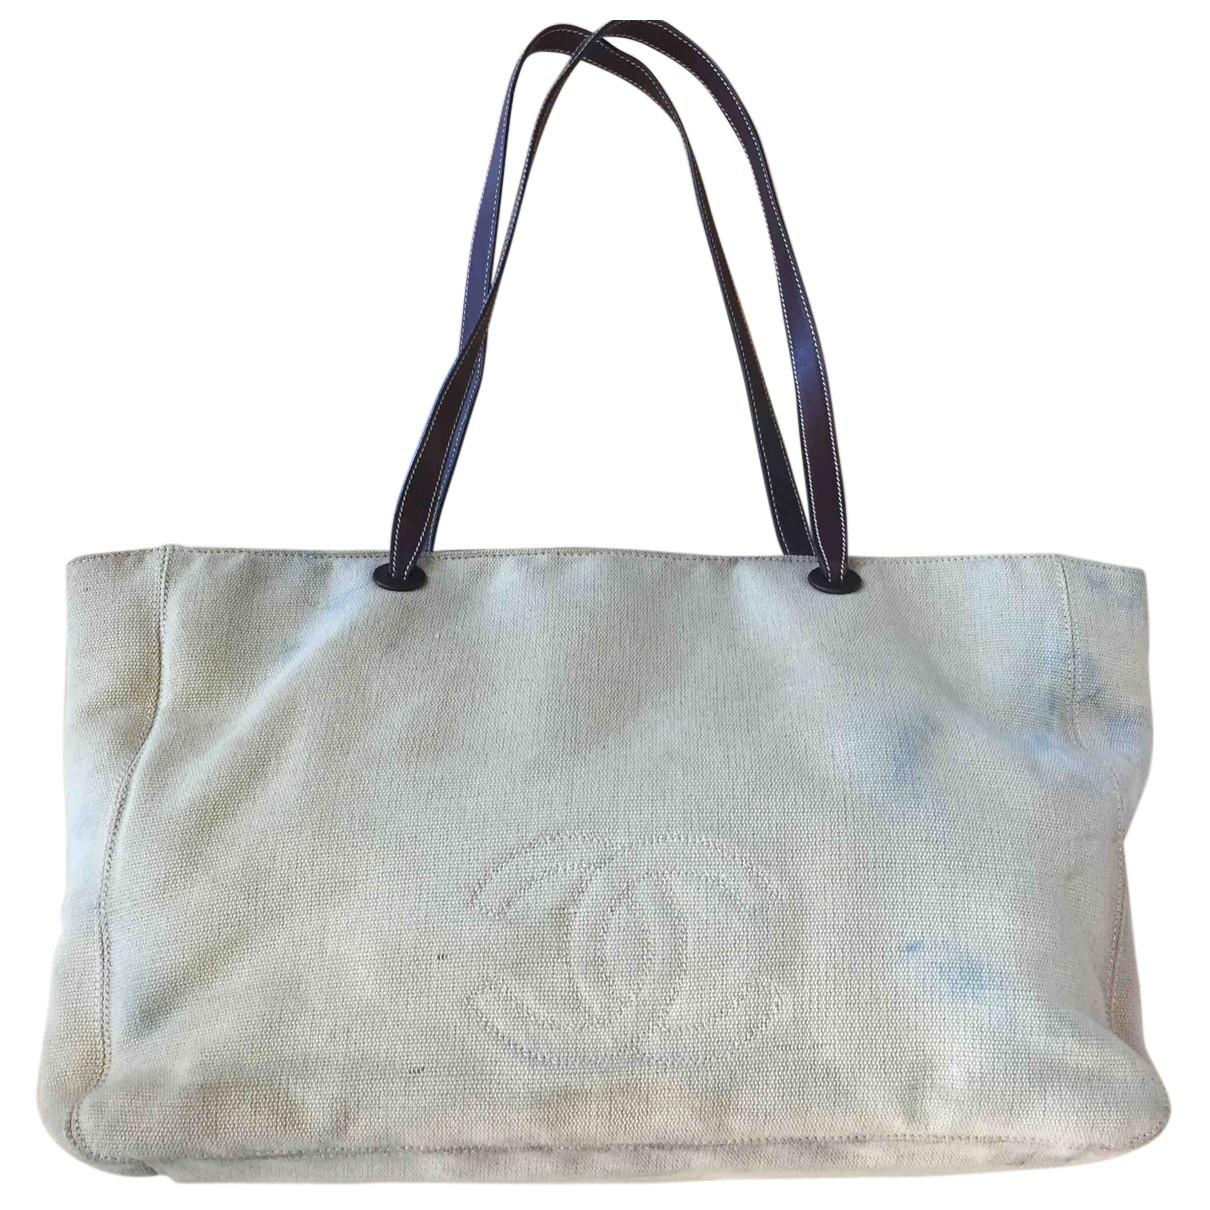 3a369d293308 Lyst - Chanel Cloth Tote in Natural